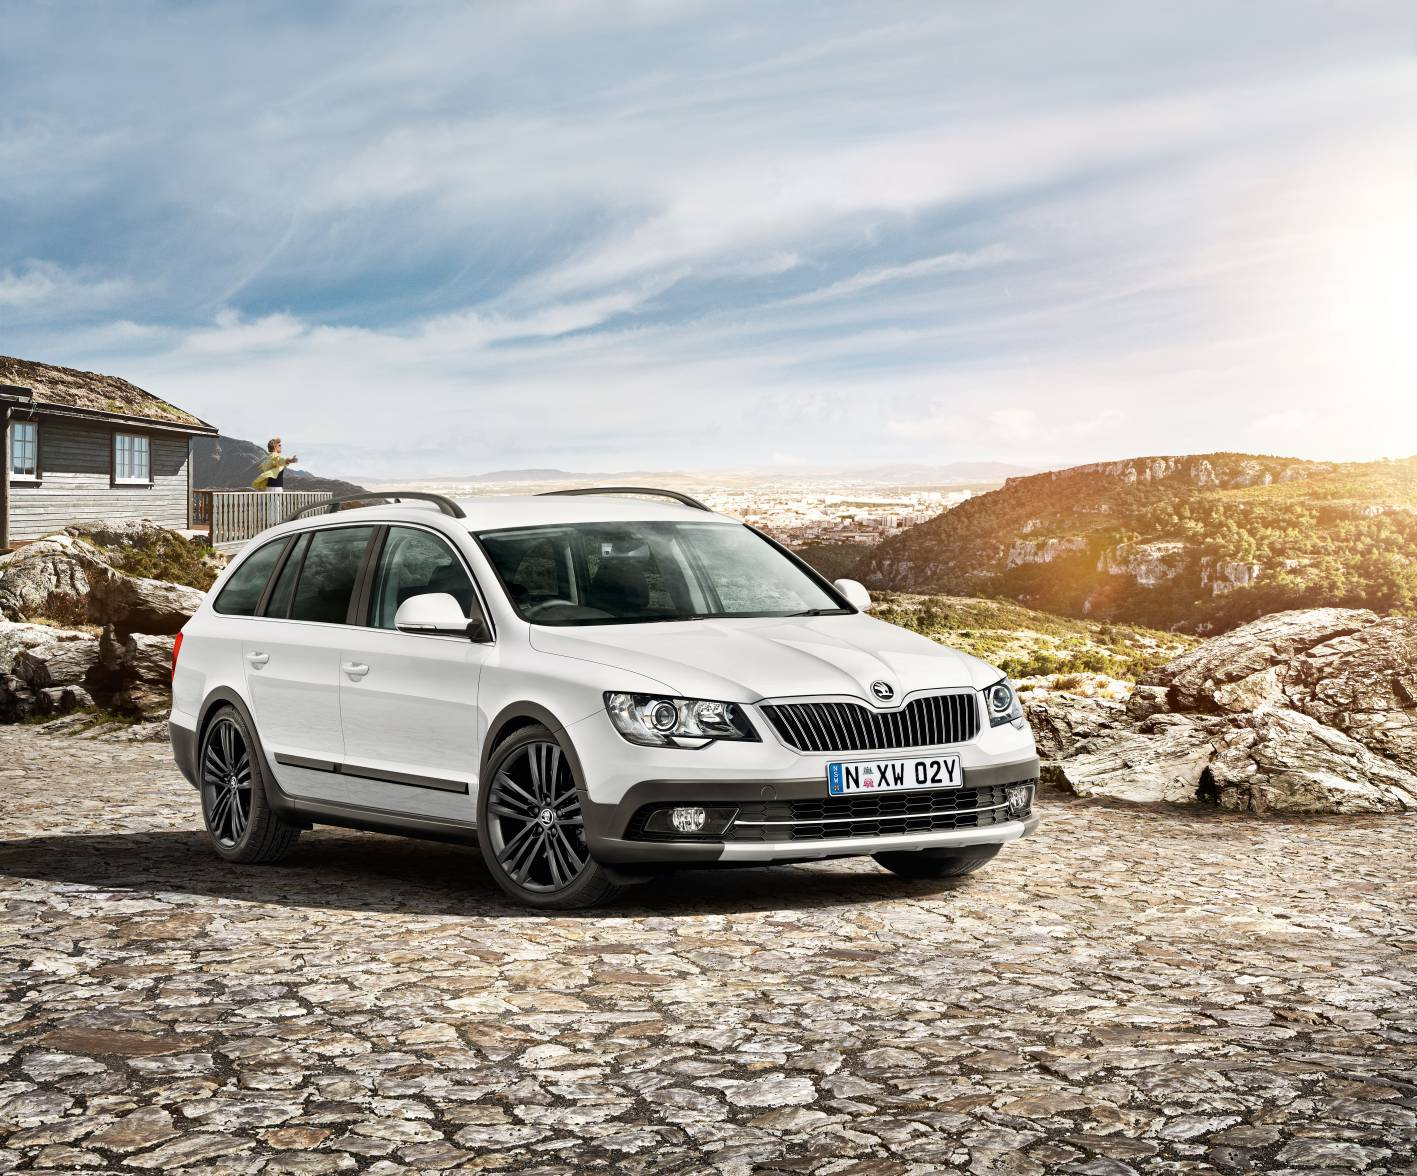 skoda cars news superb 4x4 outdoor special edition launched. Black Bedroom Furniture Sets. Home Design Ideas